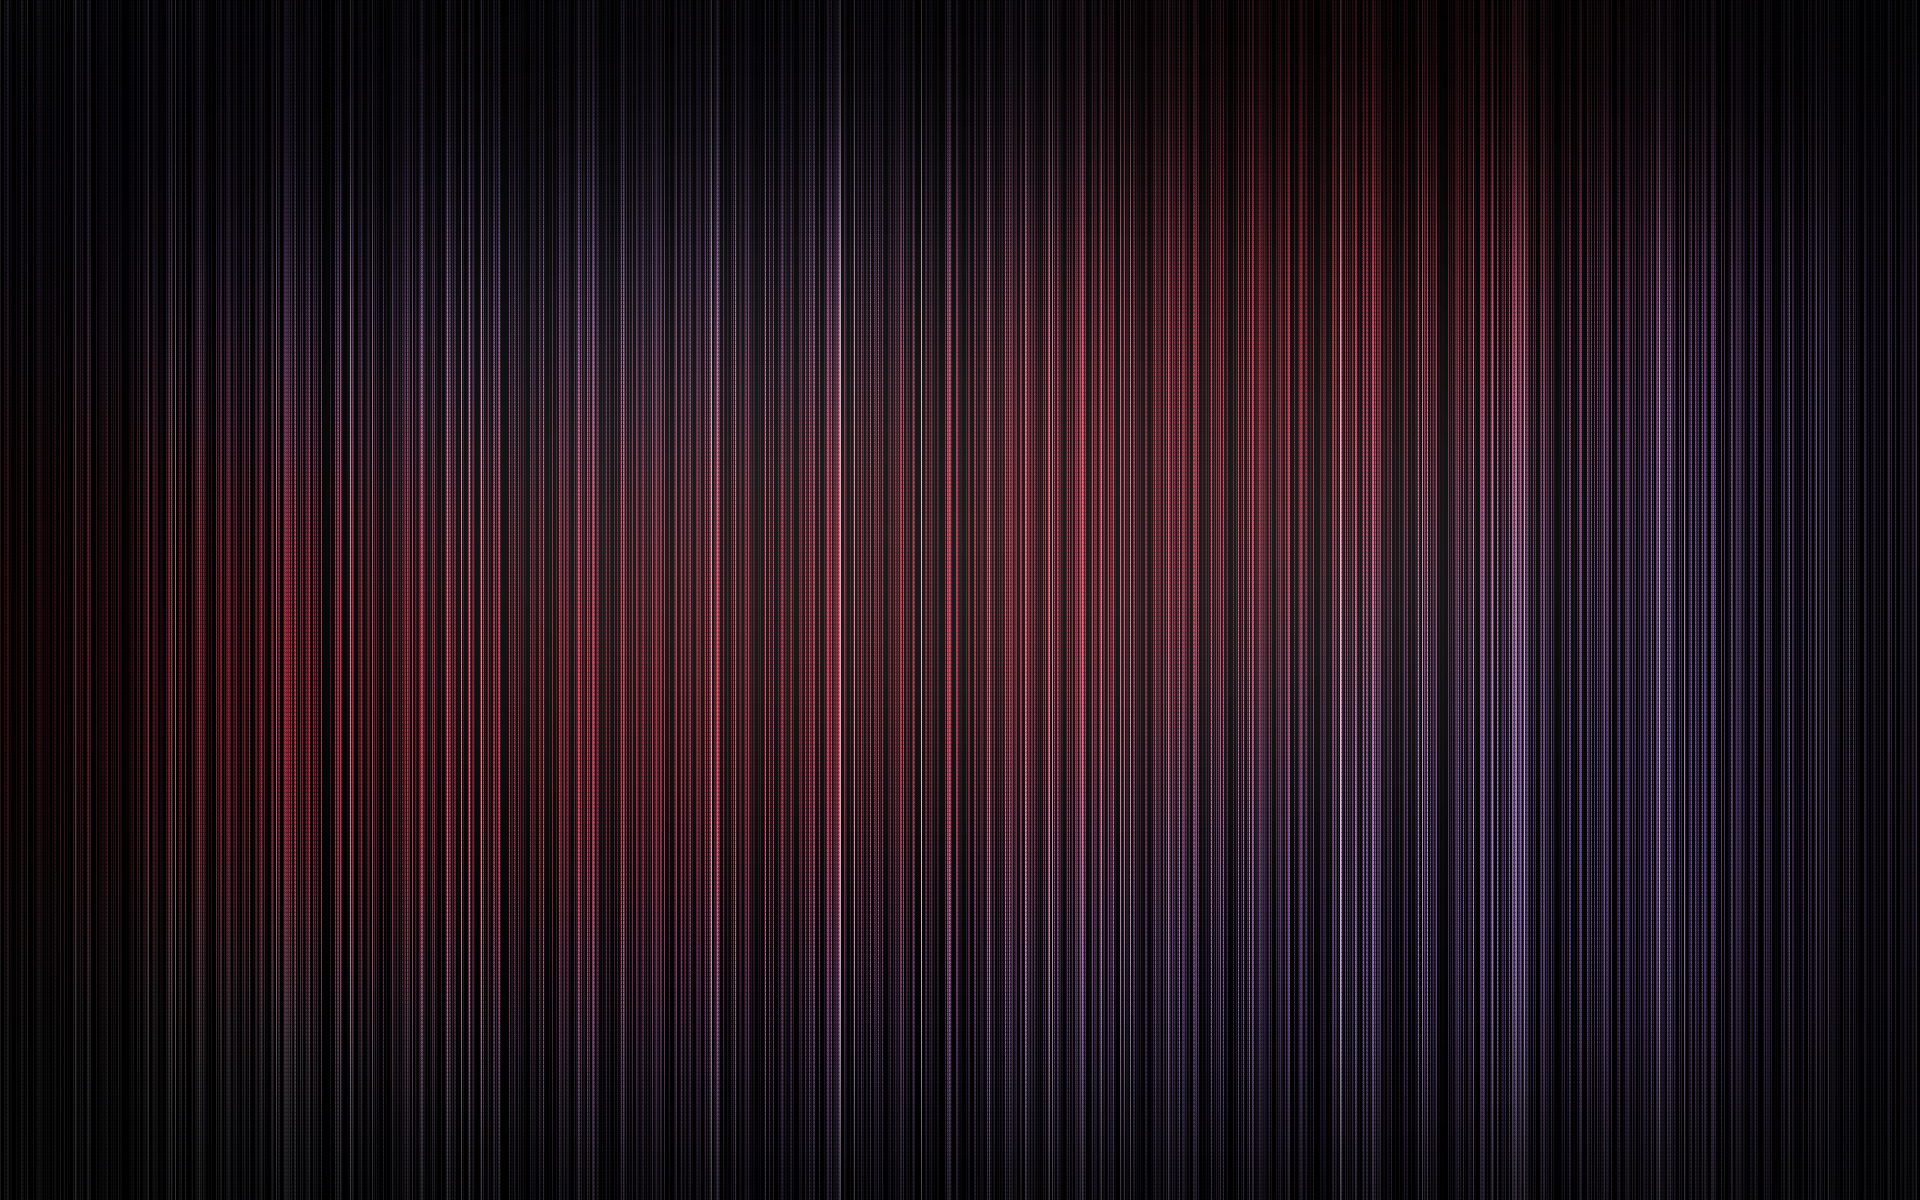 Abstract Backgrounds Backrounds Styles Media Art 2487838 Wallpaper